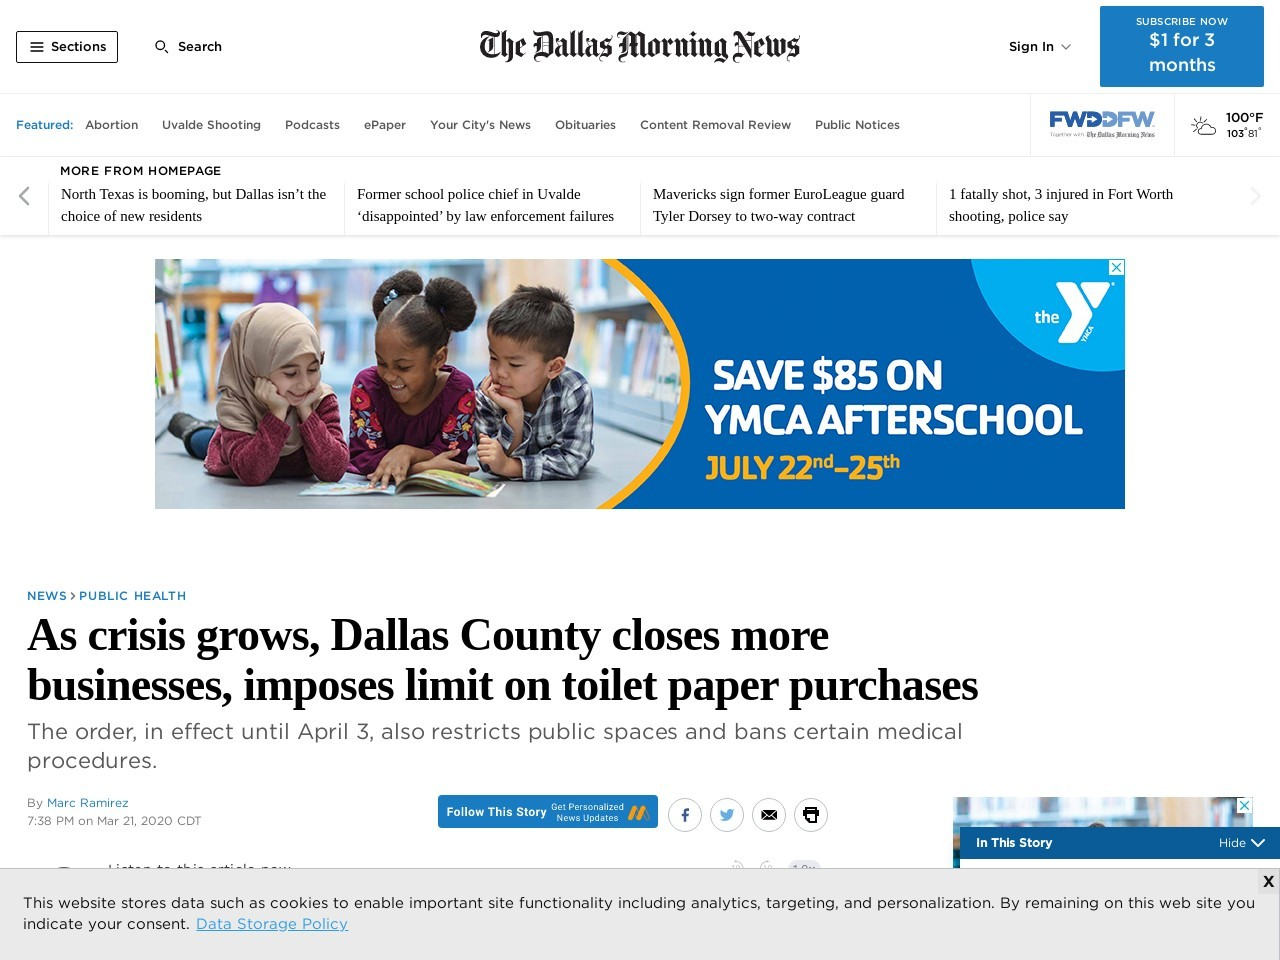 Dallas County closes more businesses, rolls out toilet-paper purchase limit as COVID-19 crisis grows